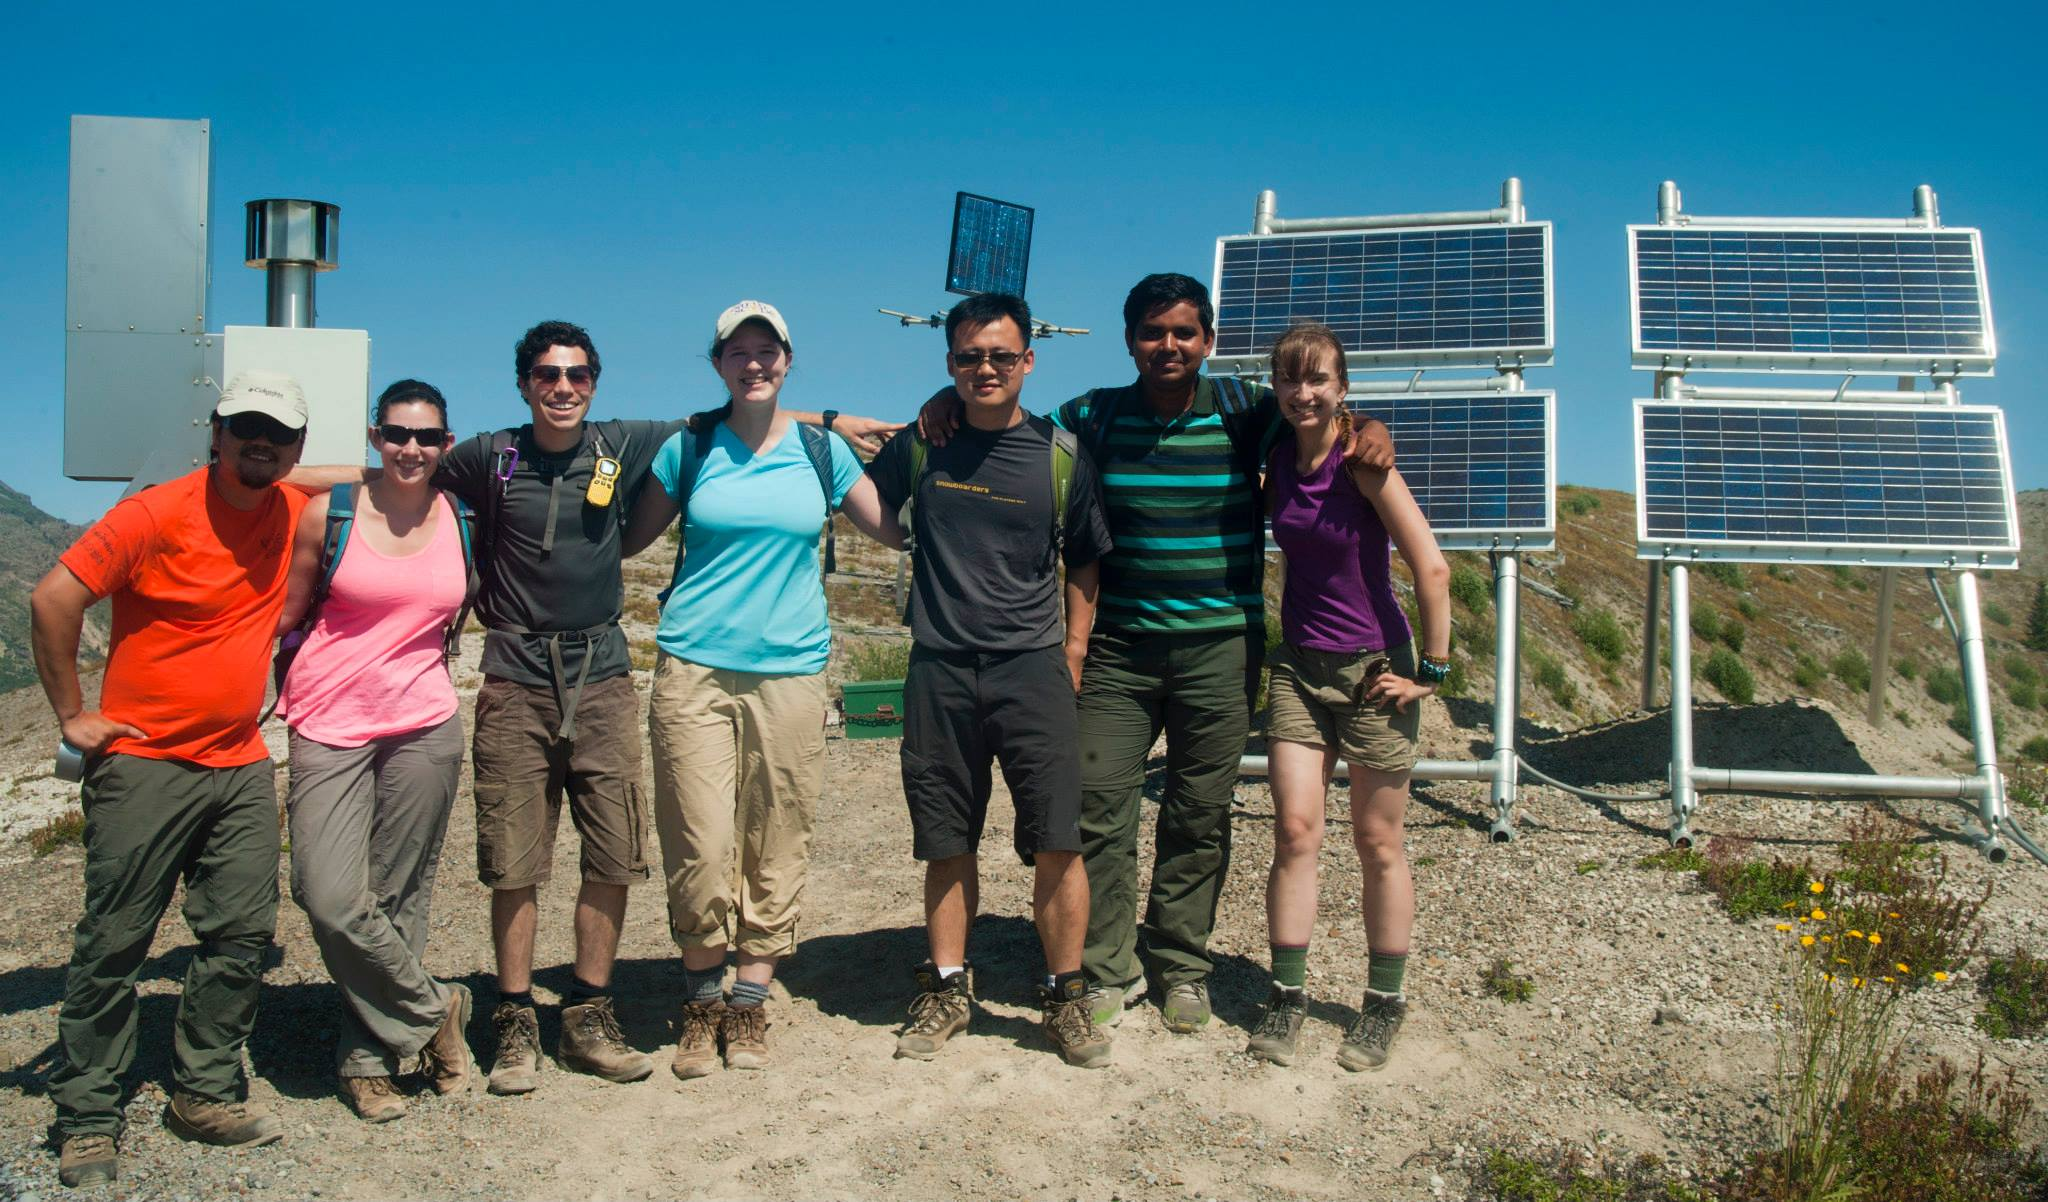 With fellow seismology students in Washington State